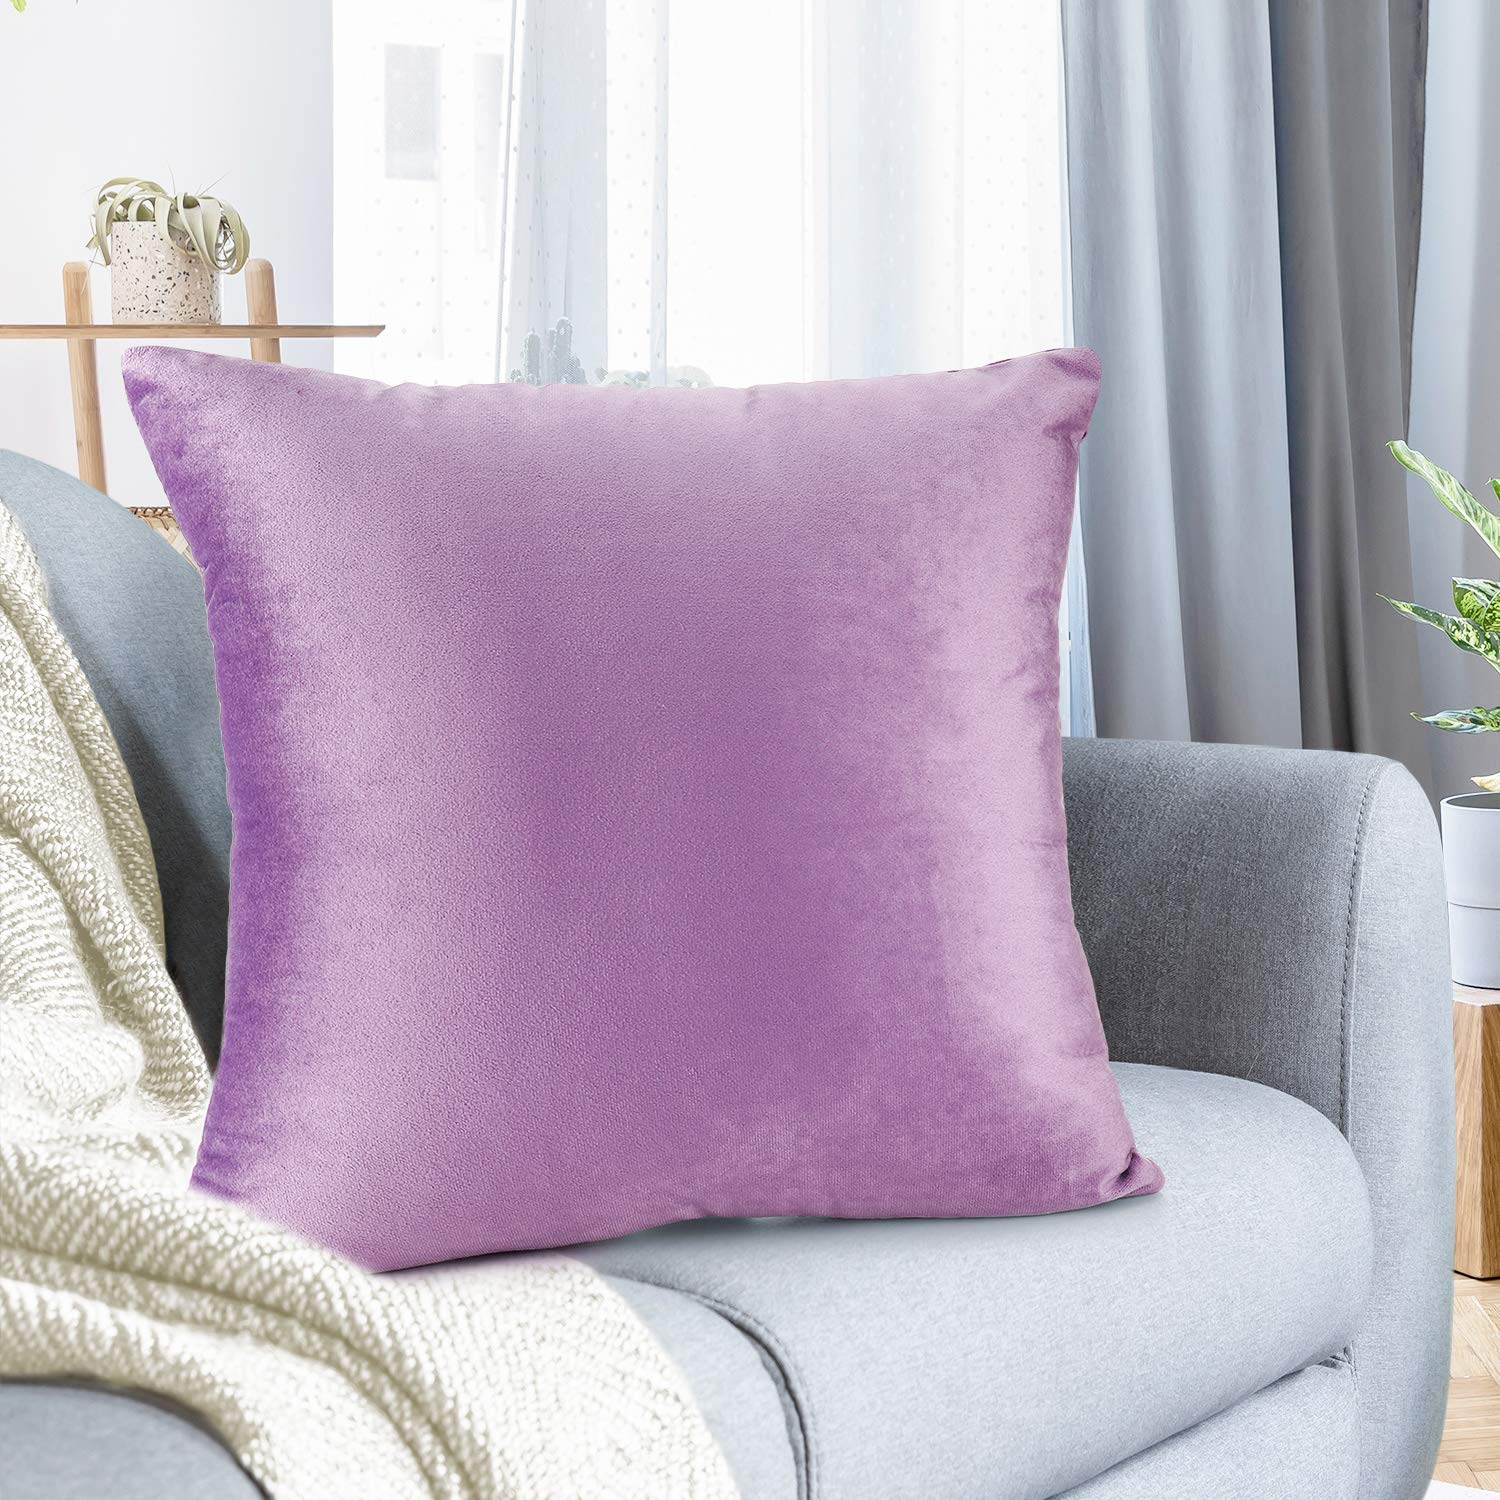 "Nestl Bedding Throw Pillow Cover 24"" x 24"" Soft Square Decorative Throw Pillow Covers Cozy Velvet Cushion Case for Sofa Couch Bedroom - Lavender"